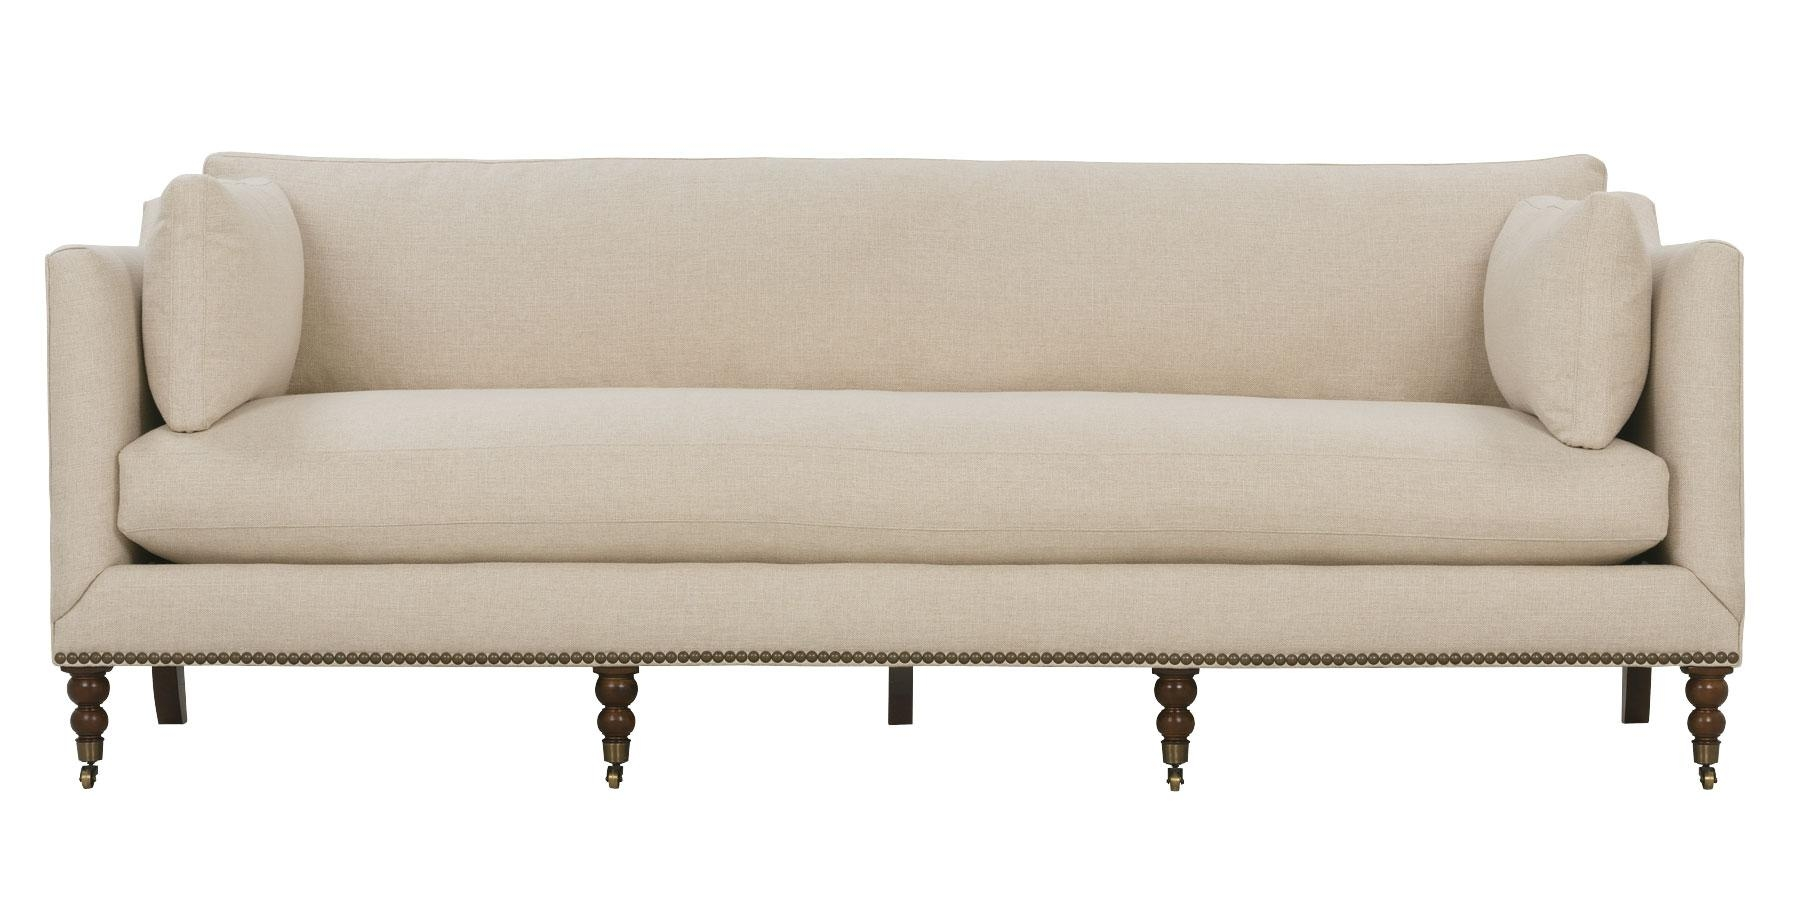 Bench Style Sofa Royal Sofa Baroque Bench Salon Sofa Antique Style Throughout Bench Style Sofas (Image 5 of 20)